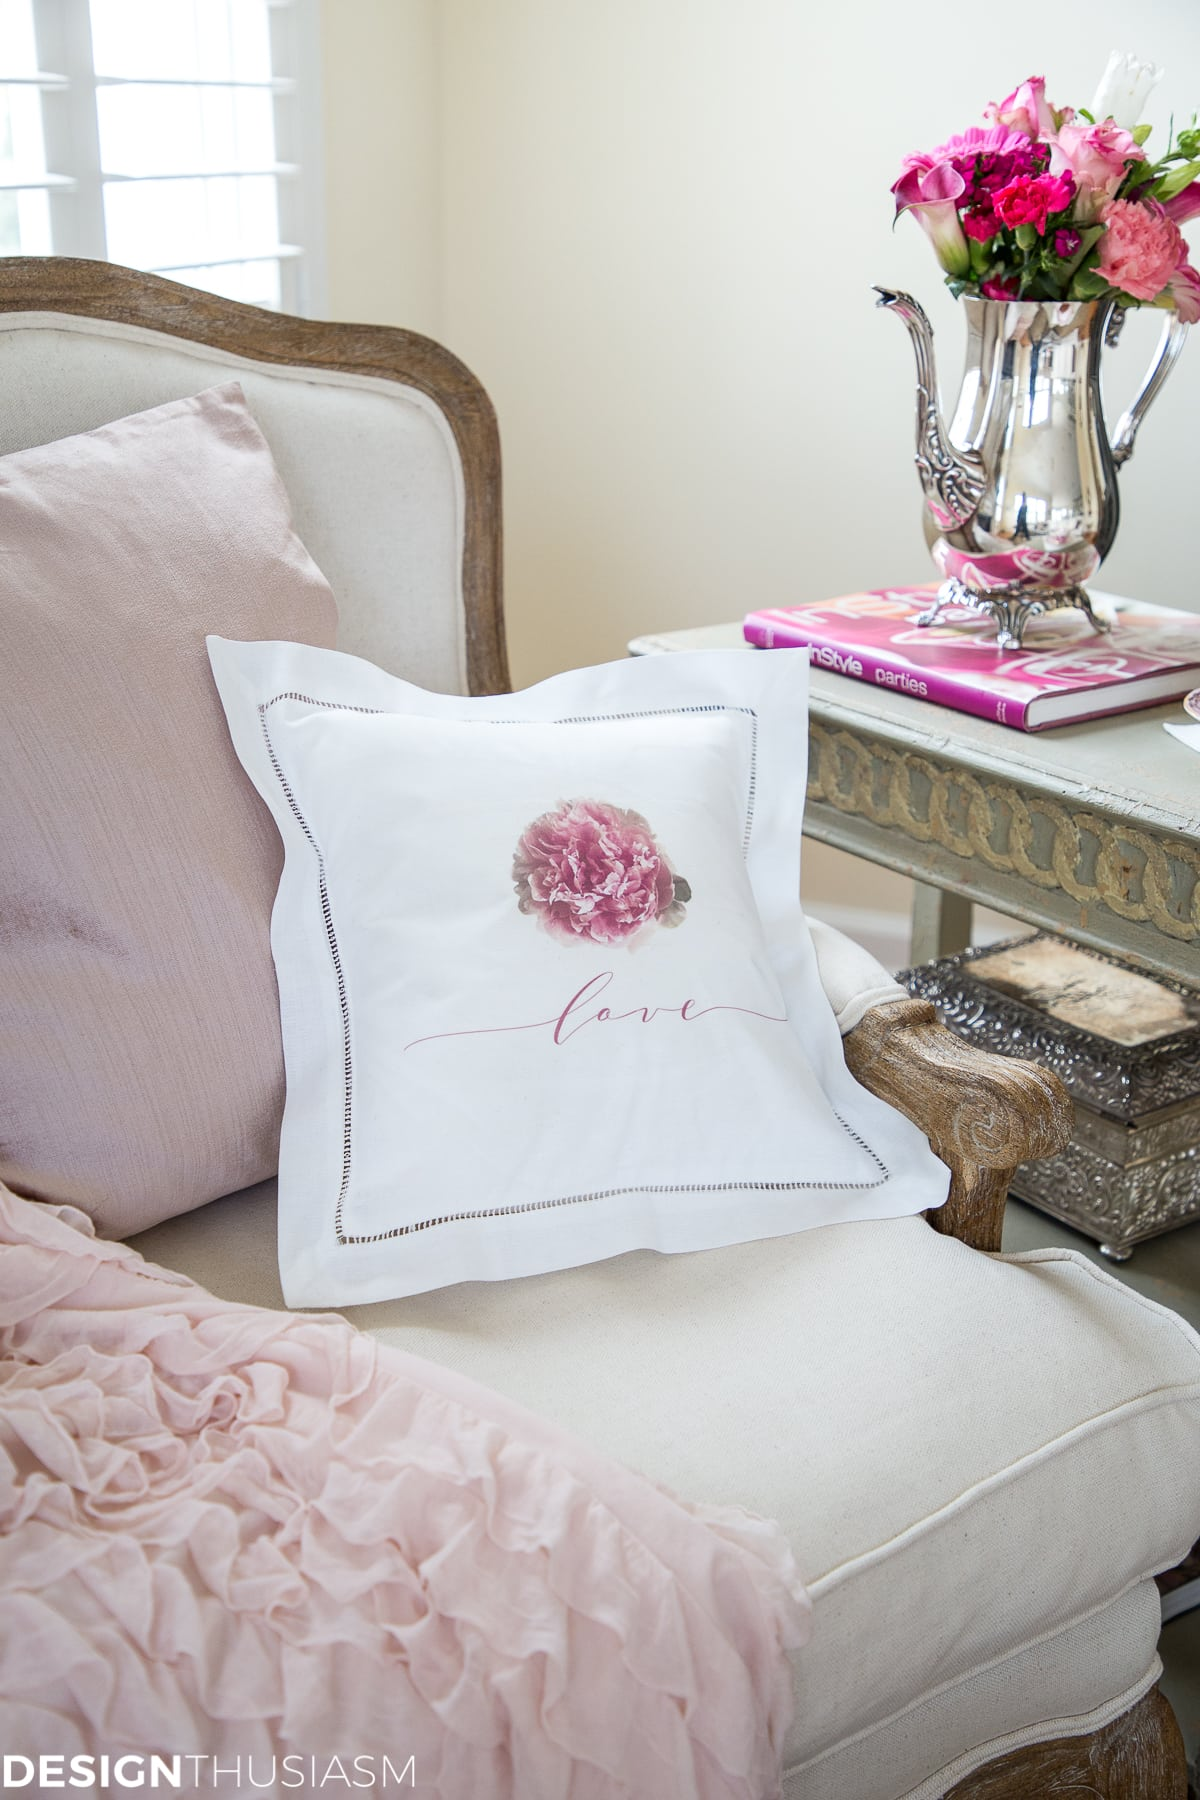 Peony Love | Romantic Decorative Pillow Covers - designthusiasm.com